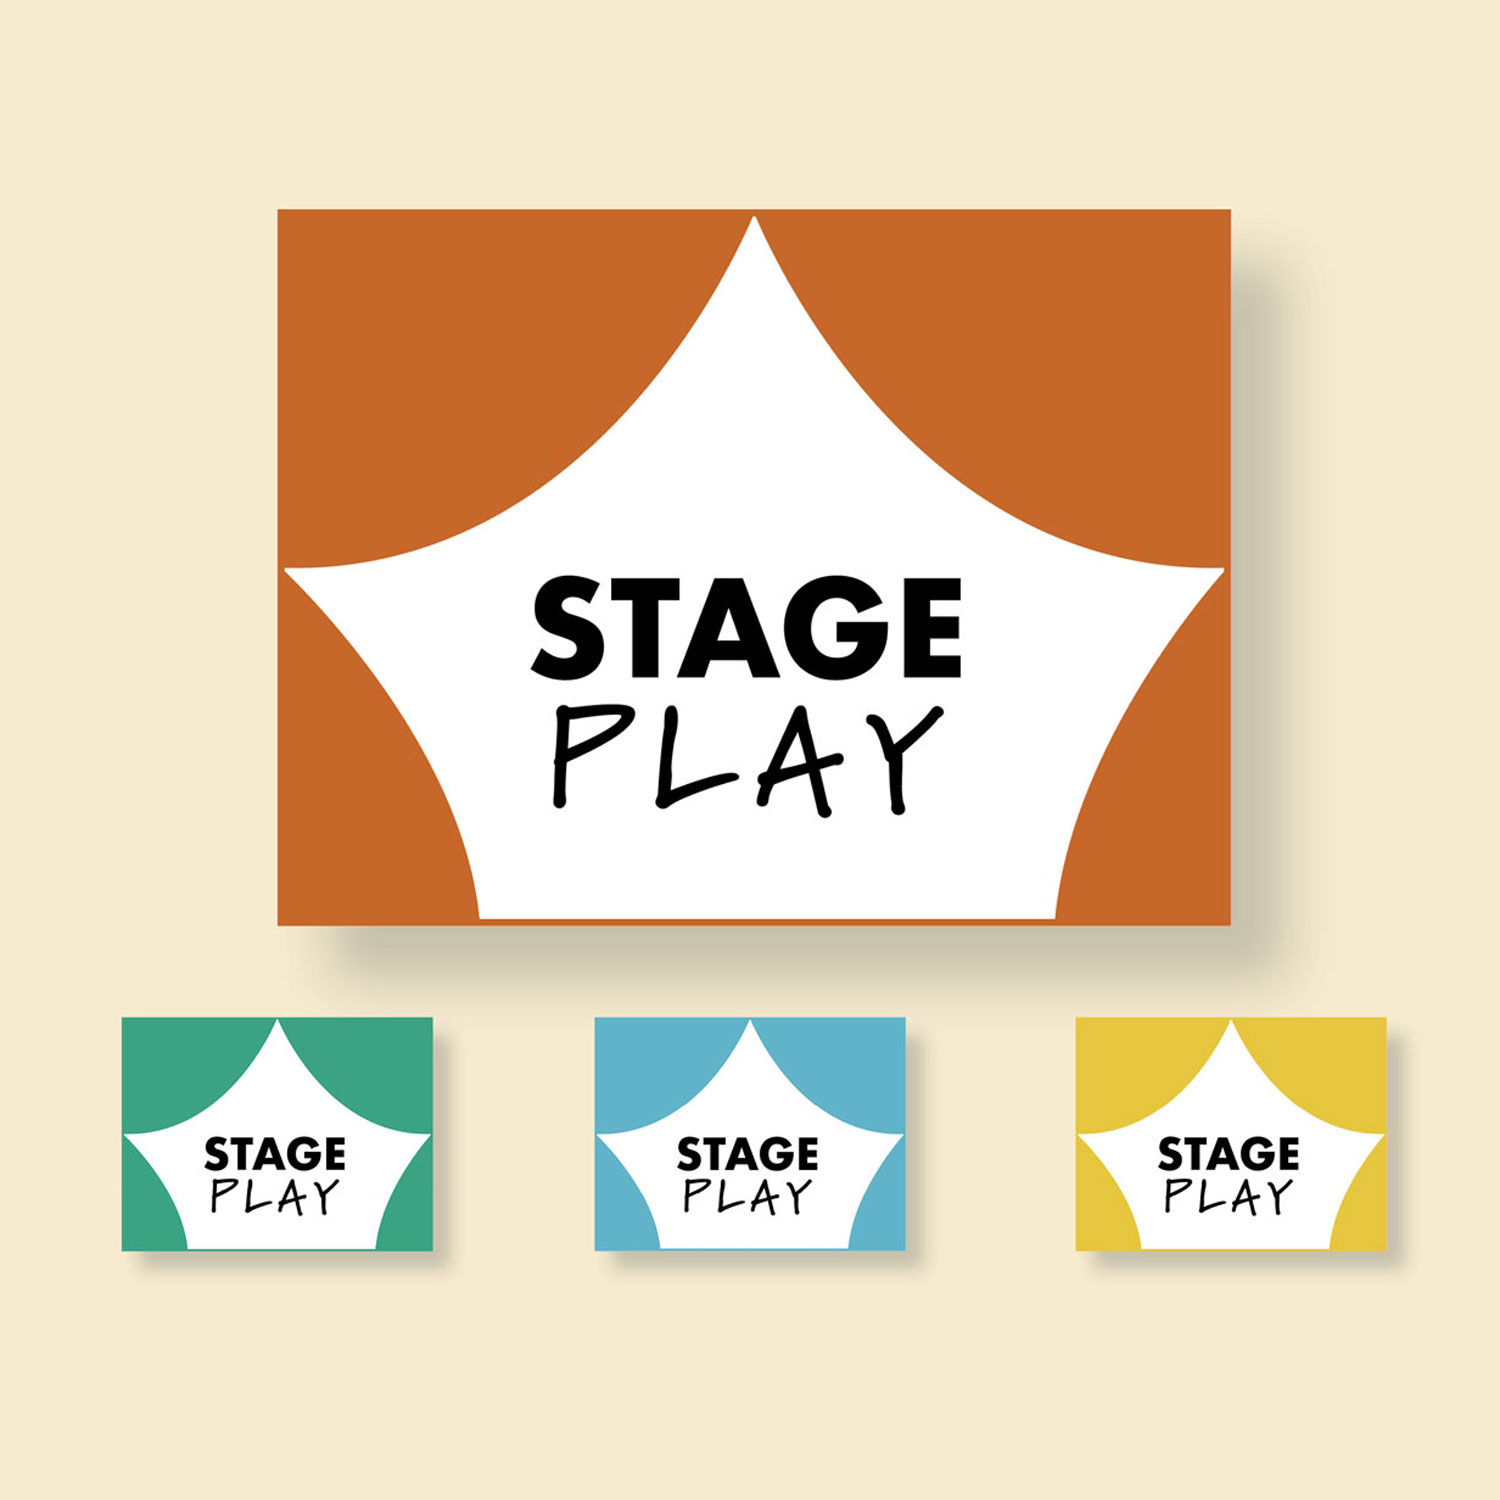 stageplay-logos-sq.jpg